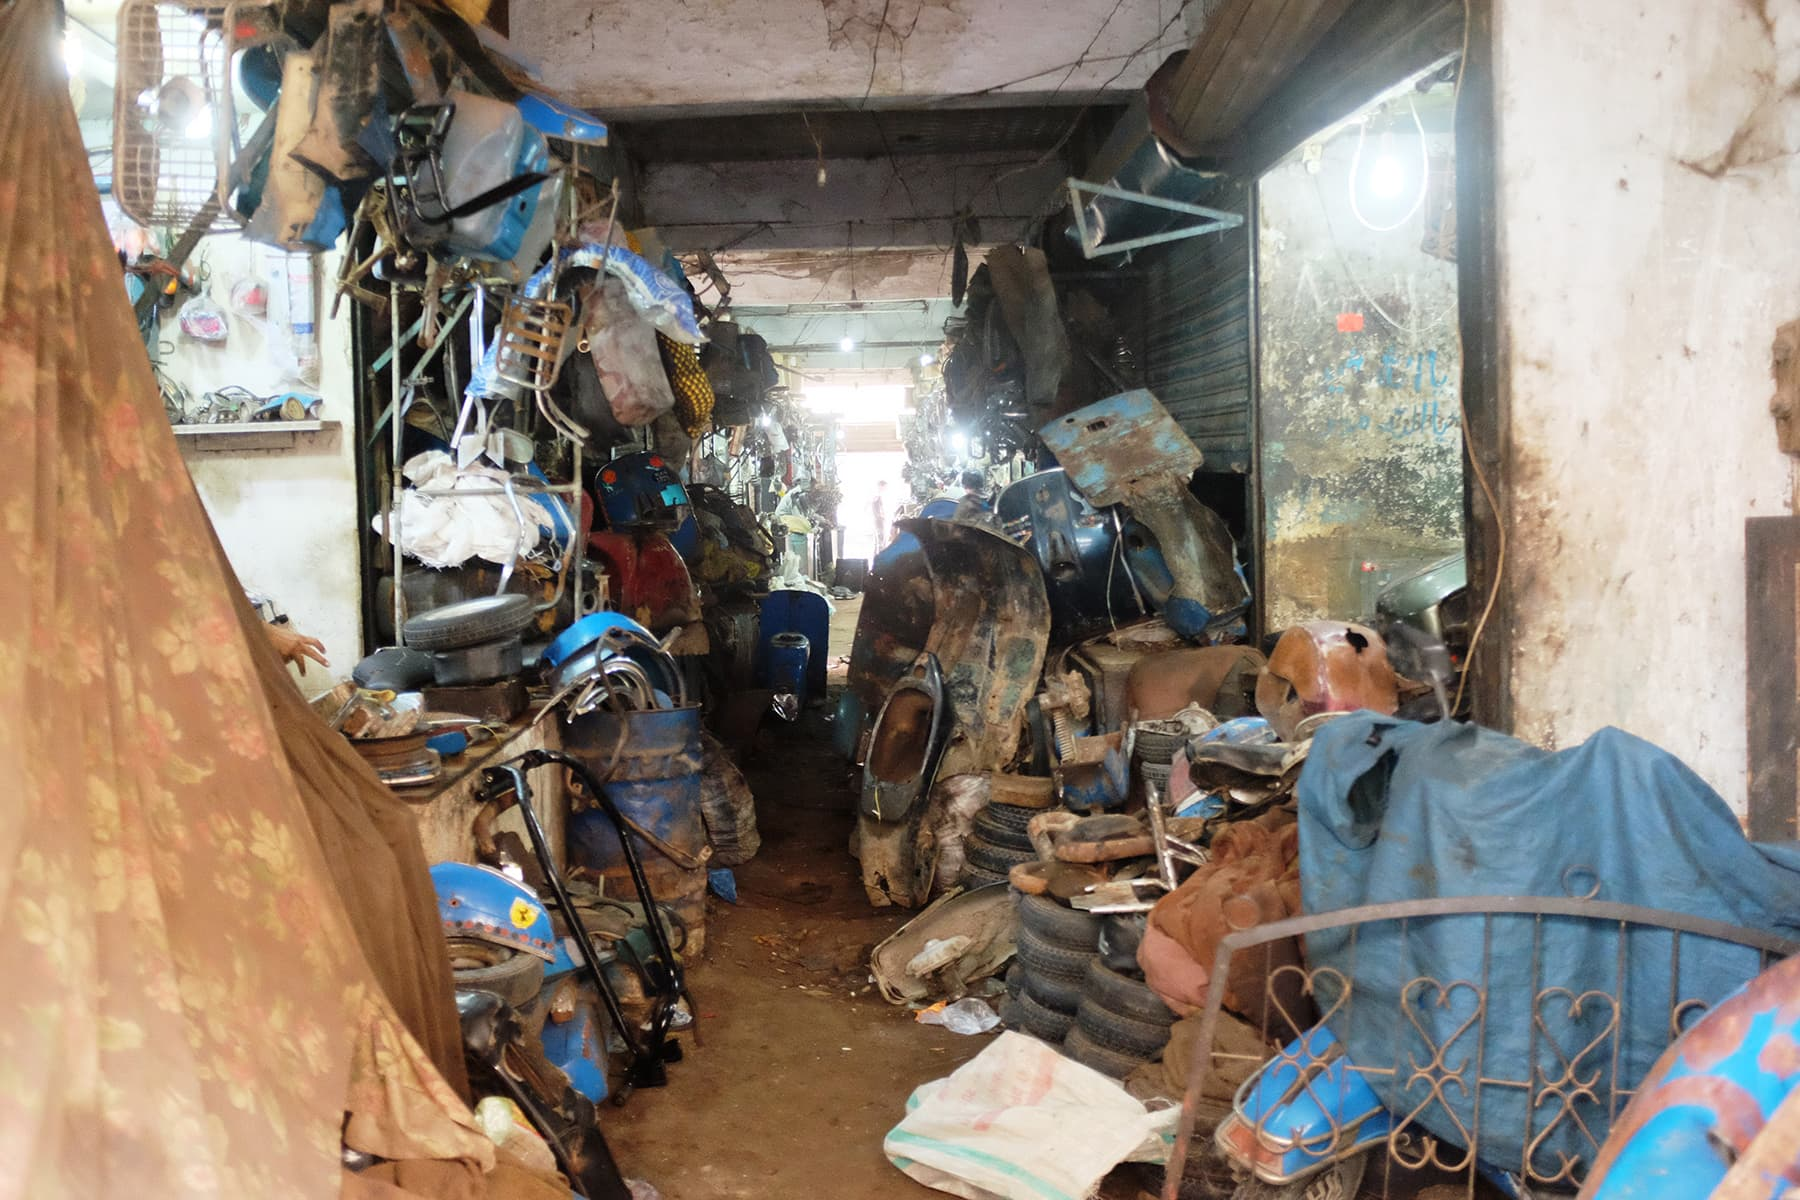 The narrow lane looks like a graveyard of Vespas and its spare parts.